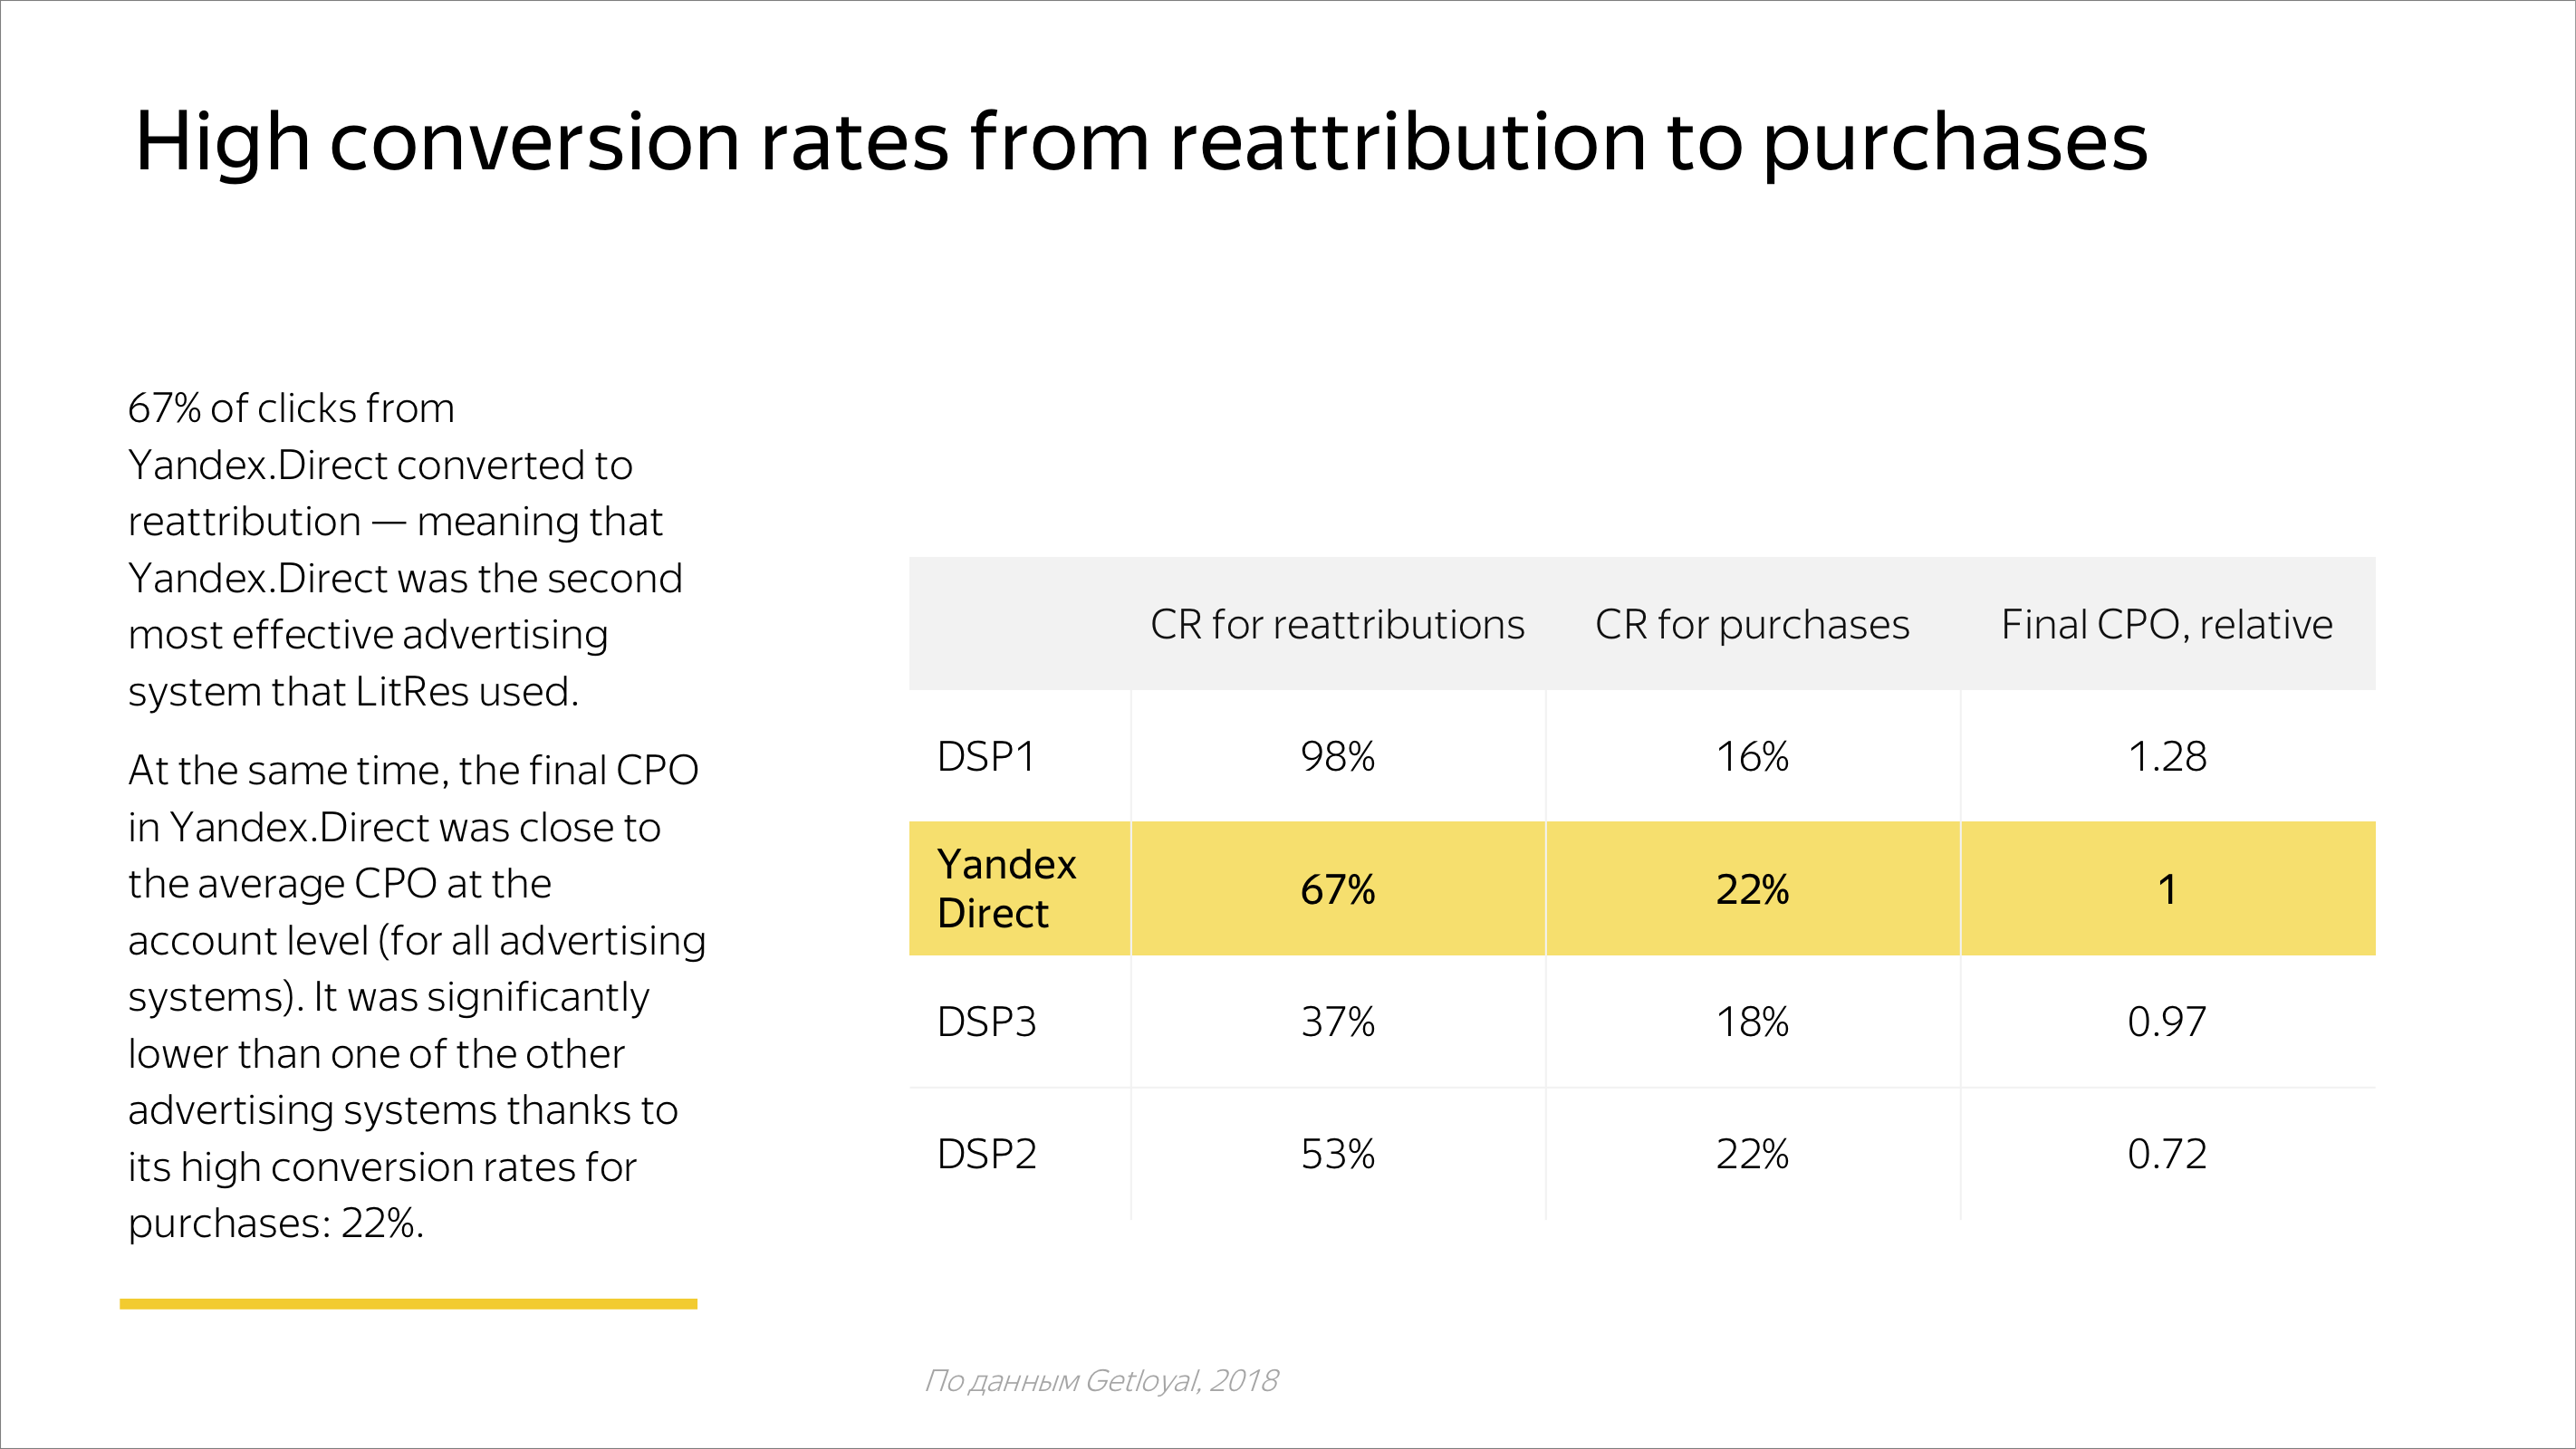 High conversion rates from reattribution to purchases